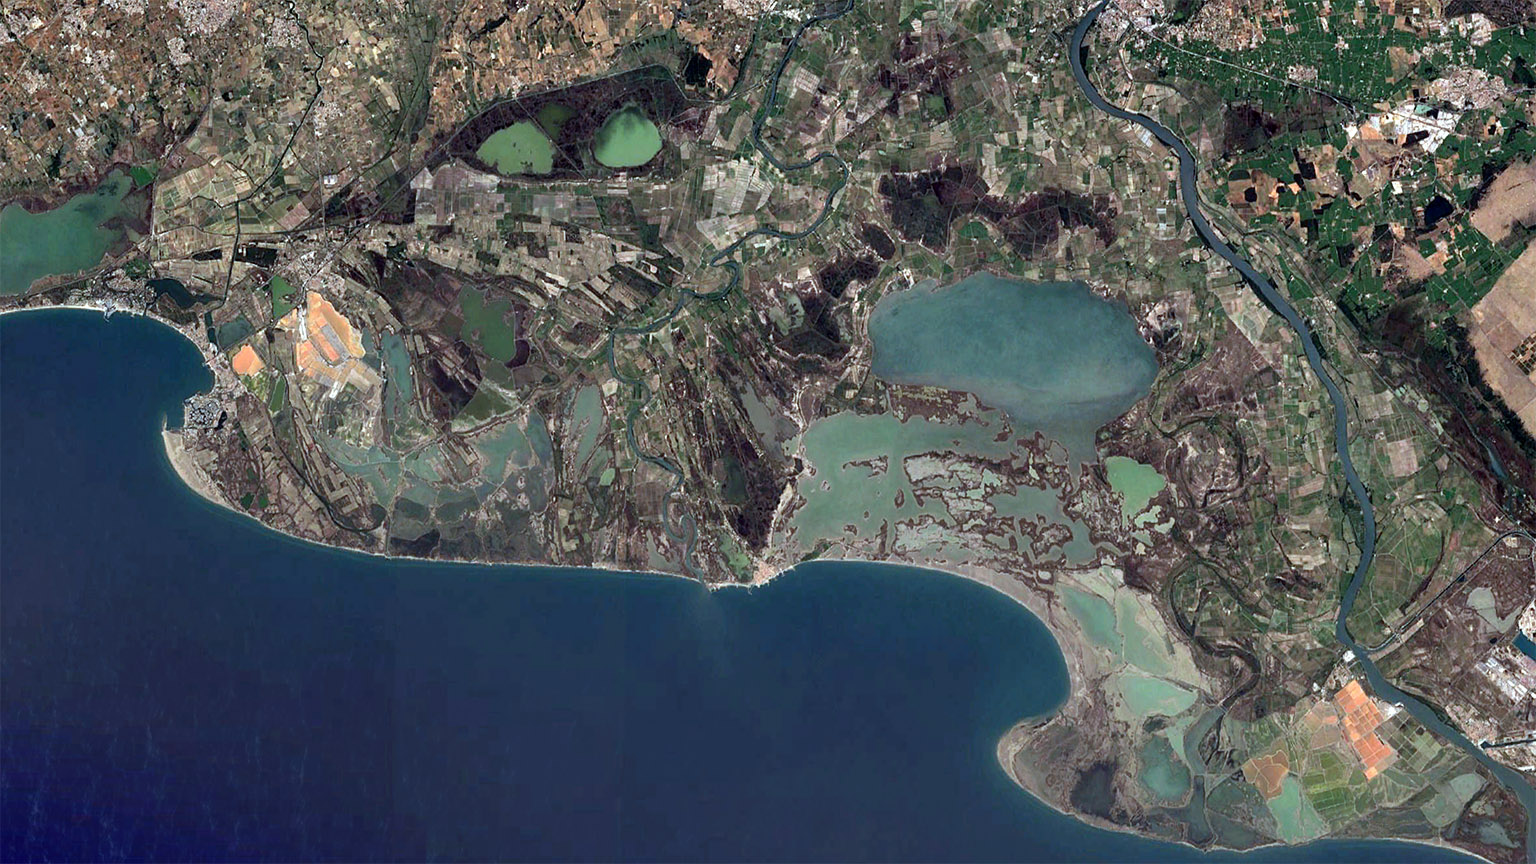 NASA satellite image of brine lagoons and marshes in the Rhone river delta in Camargue.